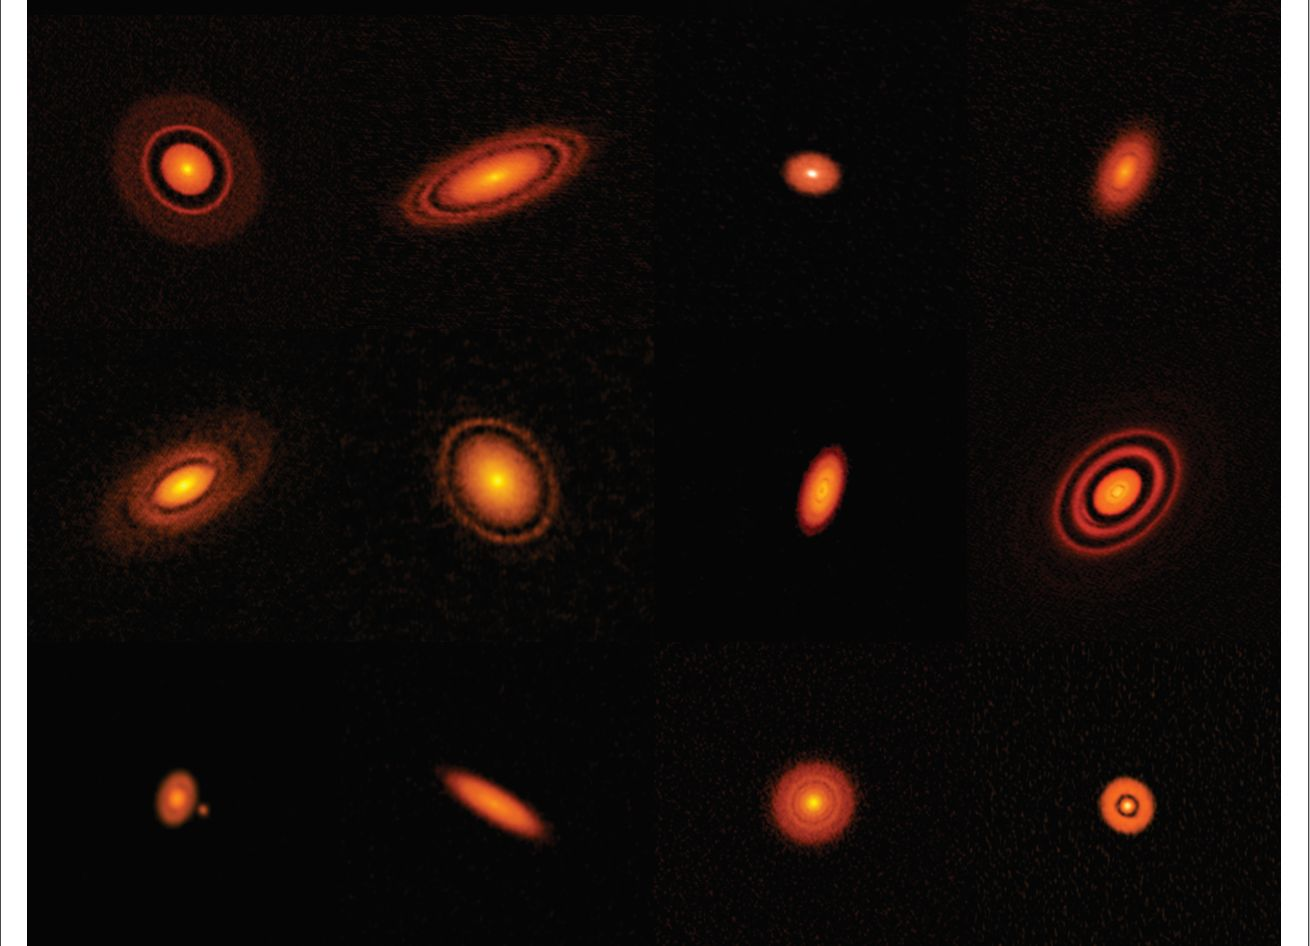 ALMA's high-resolution images of nearby protoplanetary disks, which are results of the Disk Substructures at High Angular Resolution Project (DSHARP). Credit: ALMA (ESO/NAOJ/NRAO), S. Andrews et al.; NRAO/AUI/NSF, S. Dagnello